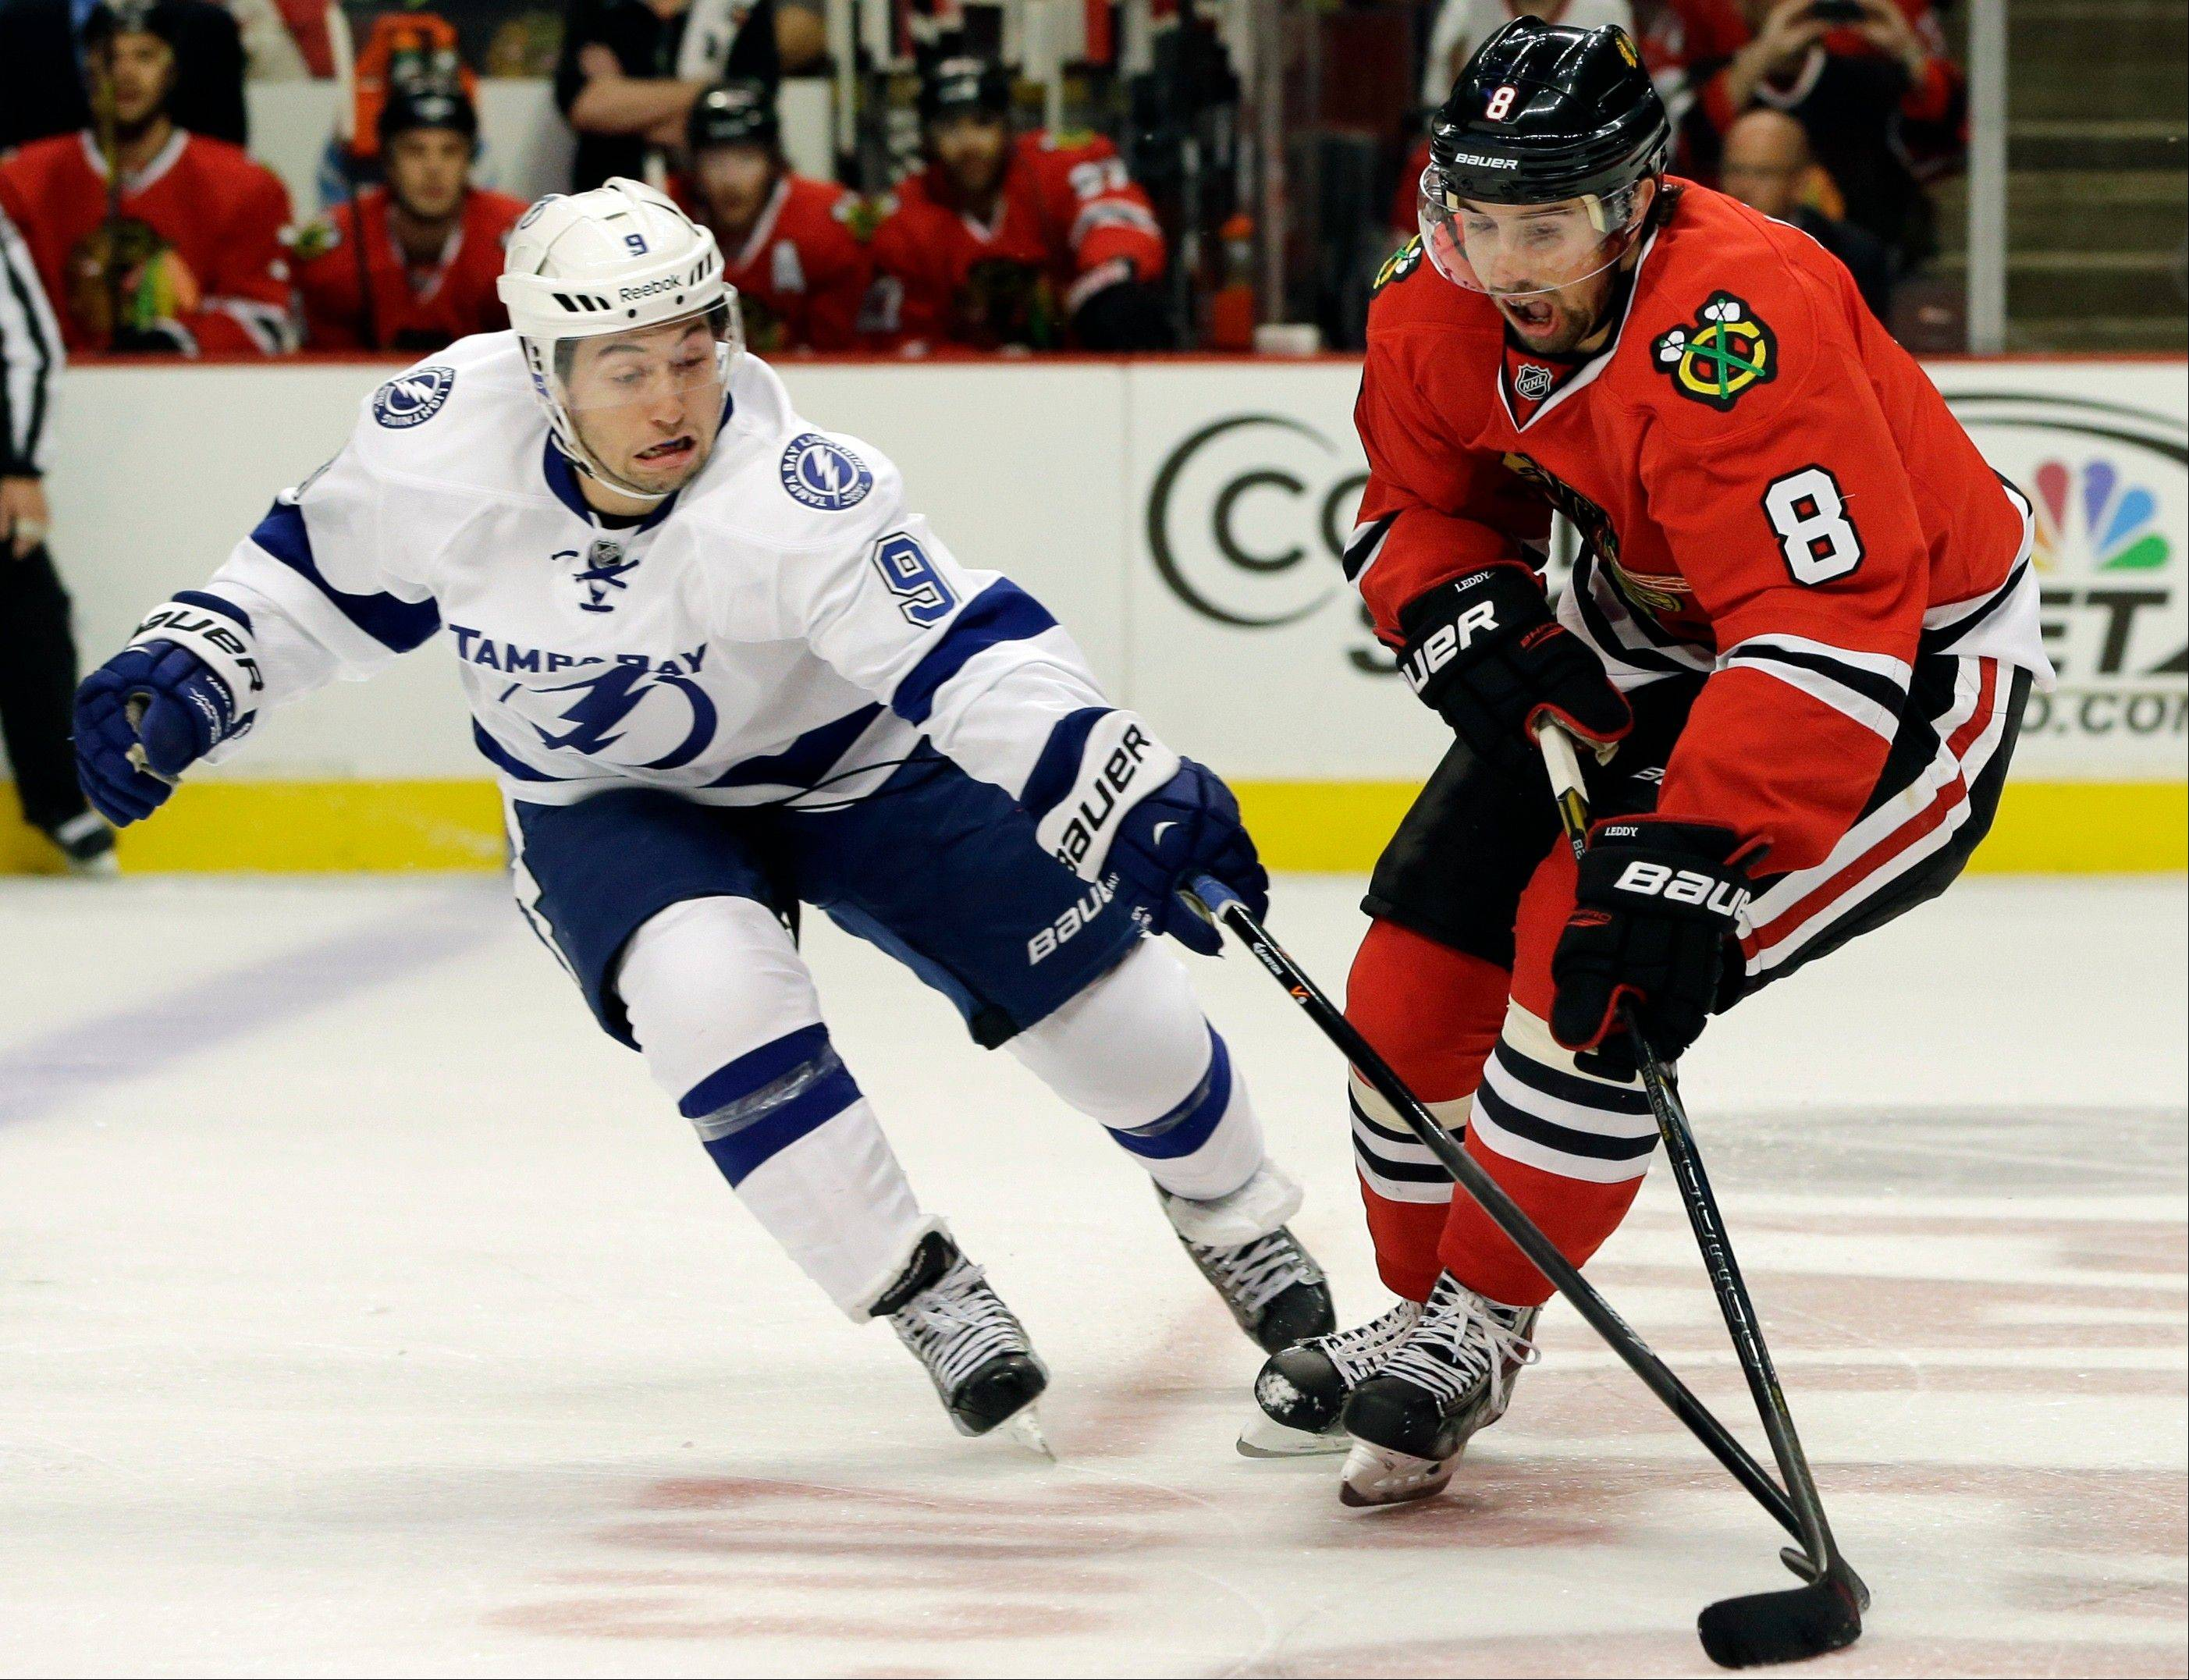 Tampa Bay Lightning's Tyler Johnson, left, and Chicago Blackhawks' Nick Leddy (8) vie for the puck during the first period of an NHL hockey game in Chicago, Saturday, Oct. 5, 2013.